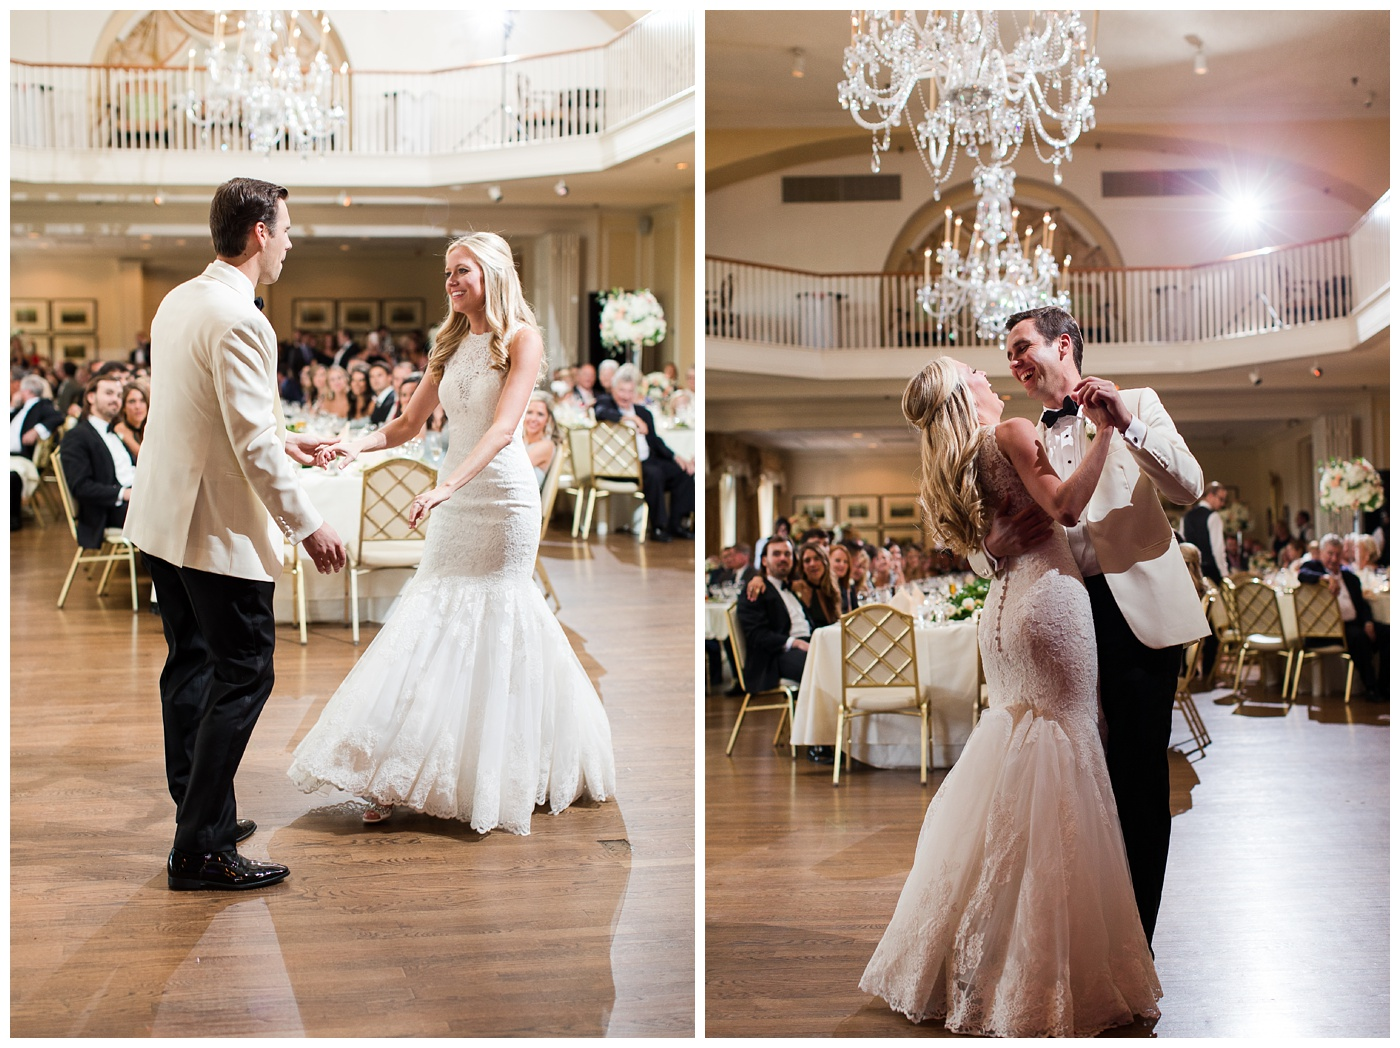 Morghan & Alex | The Country Club of Virginia Wedding